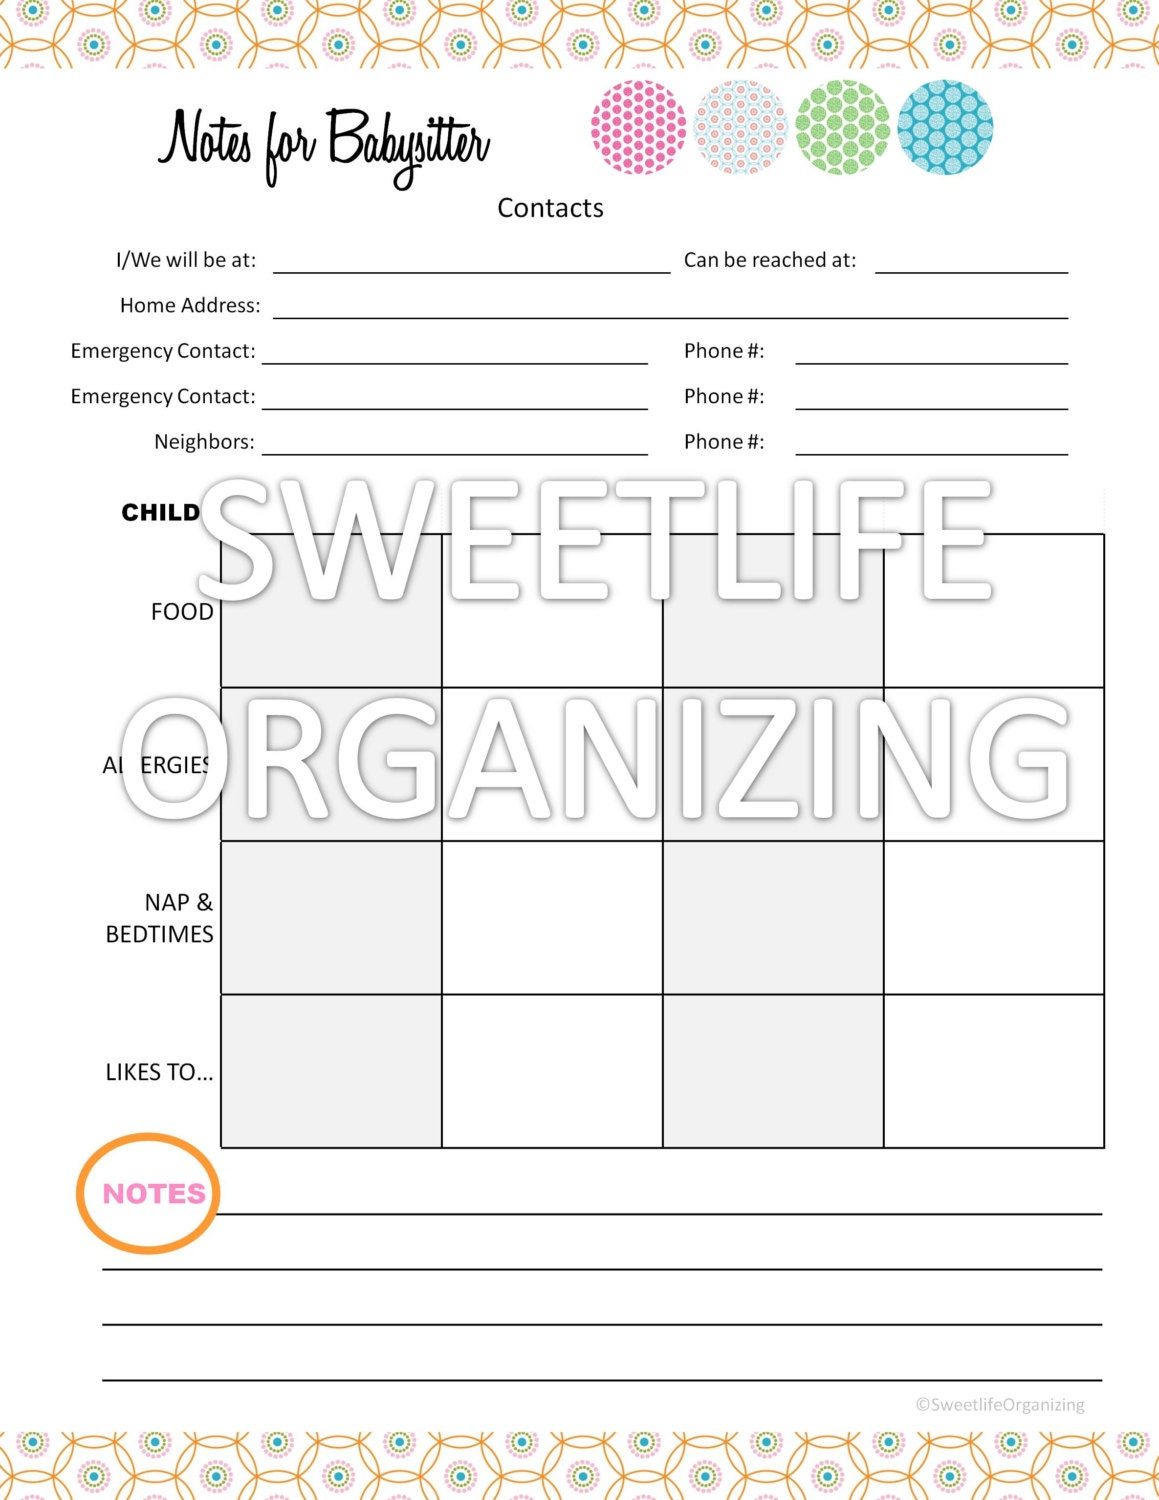 Worksheets Babysitting Worksheets babysitting worksheets images reverse search filename il fullxfull 445041244 p4o8 jpg